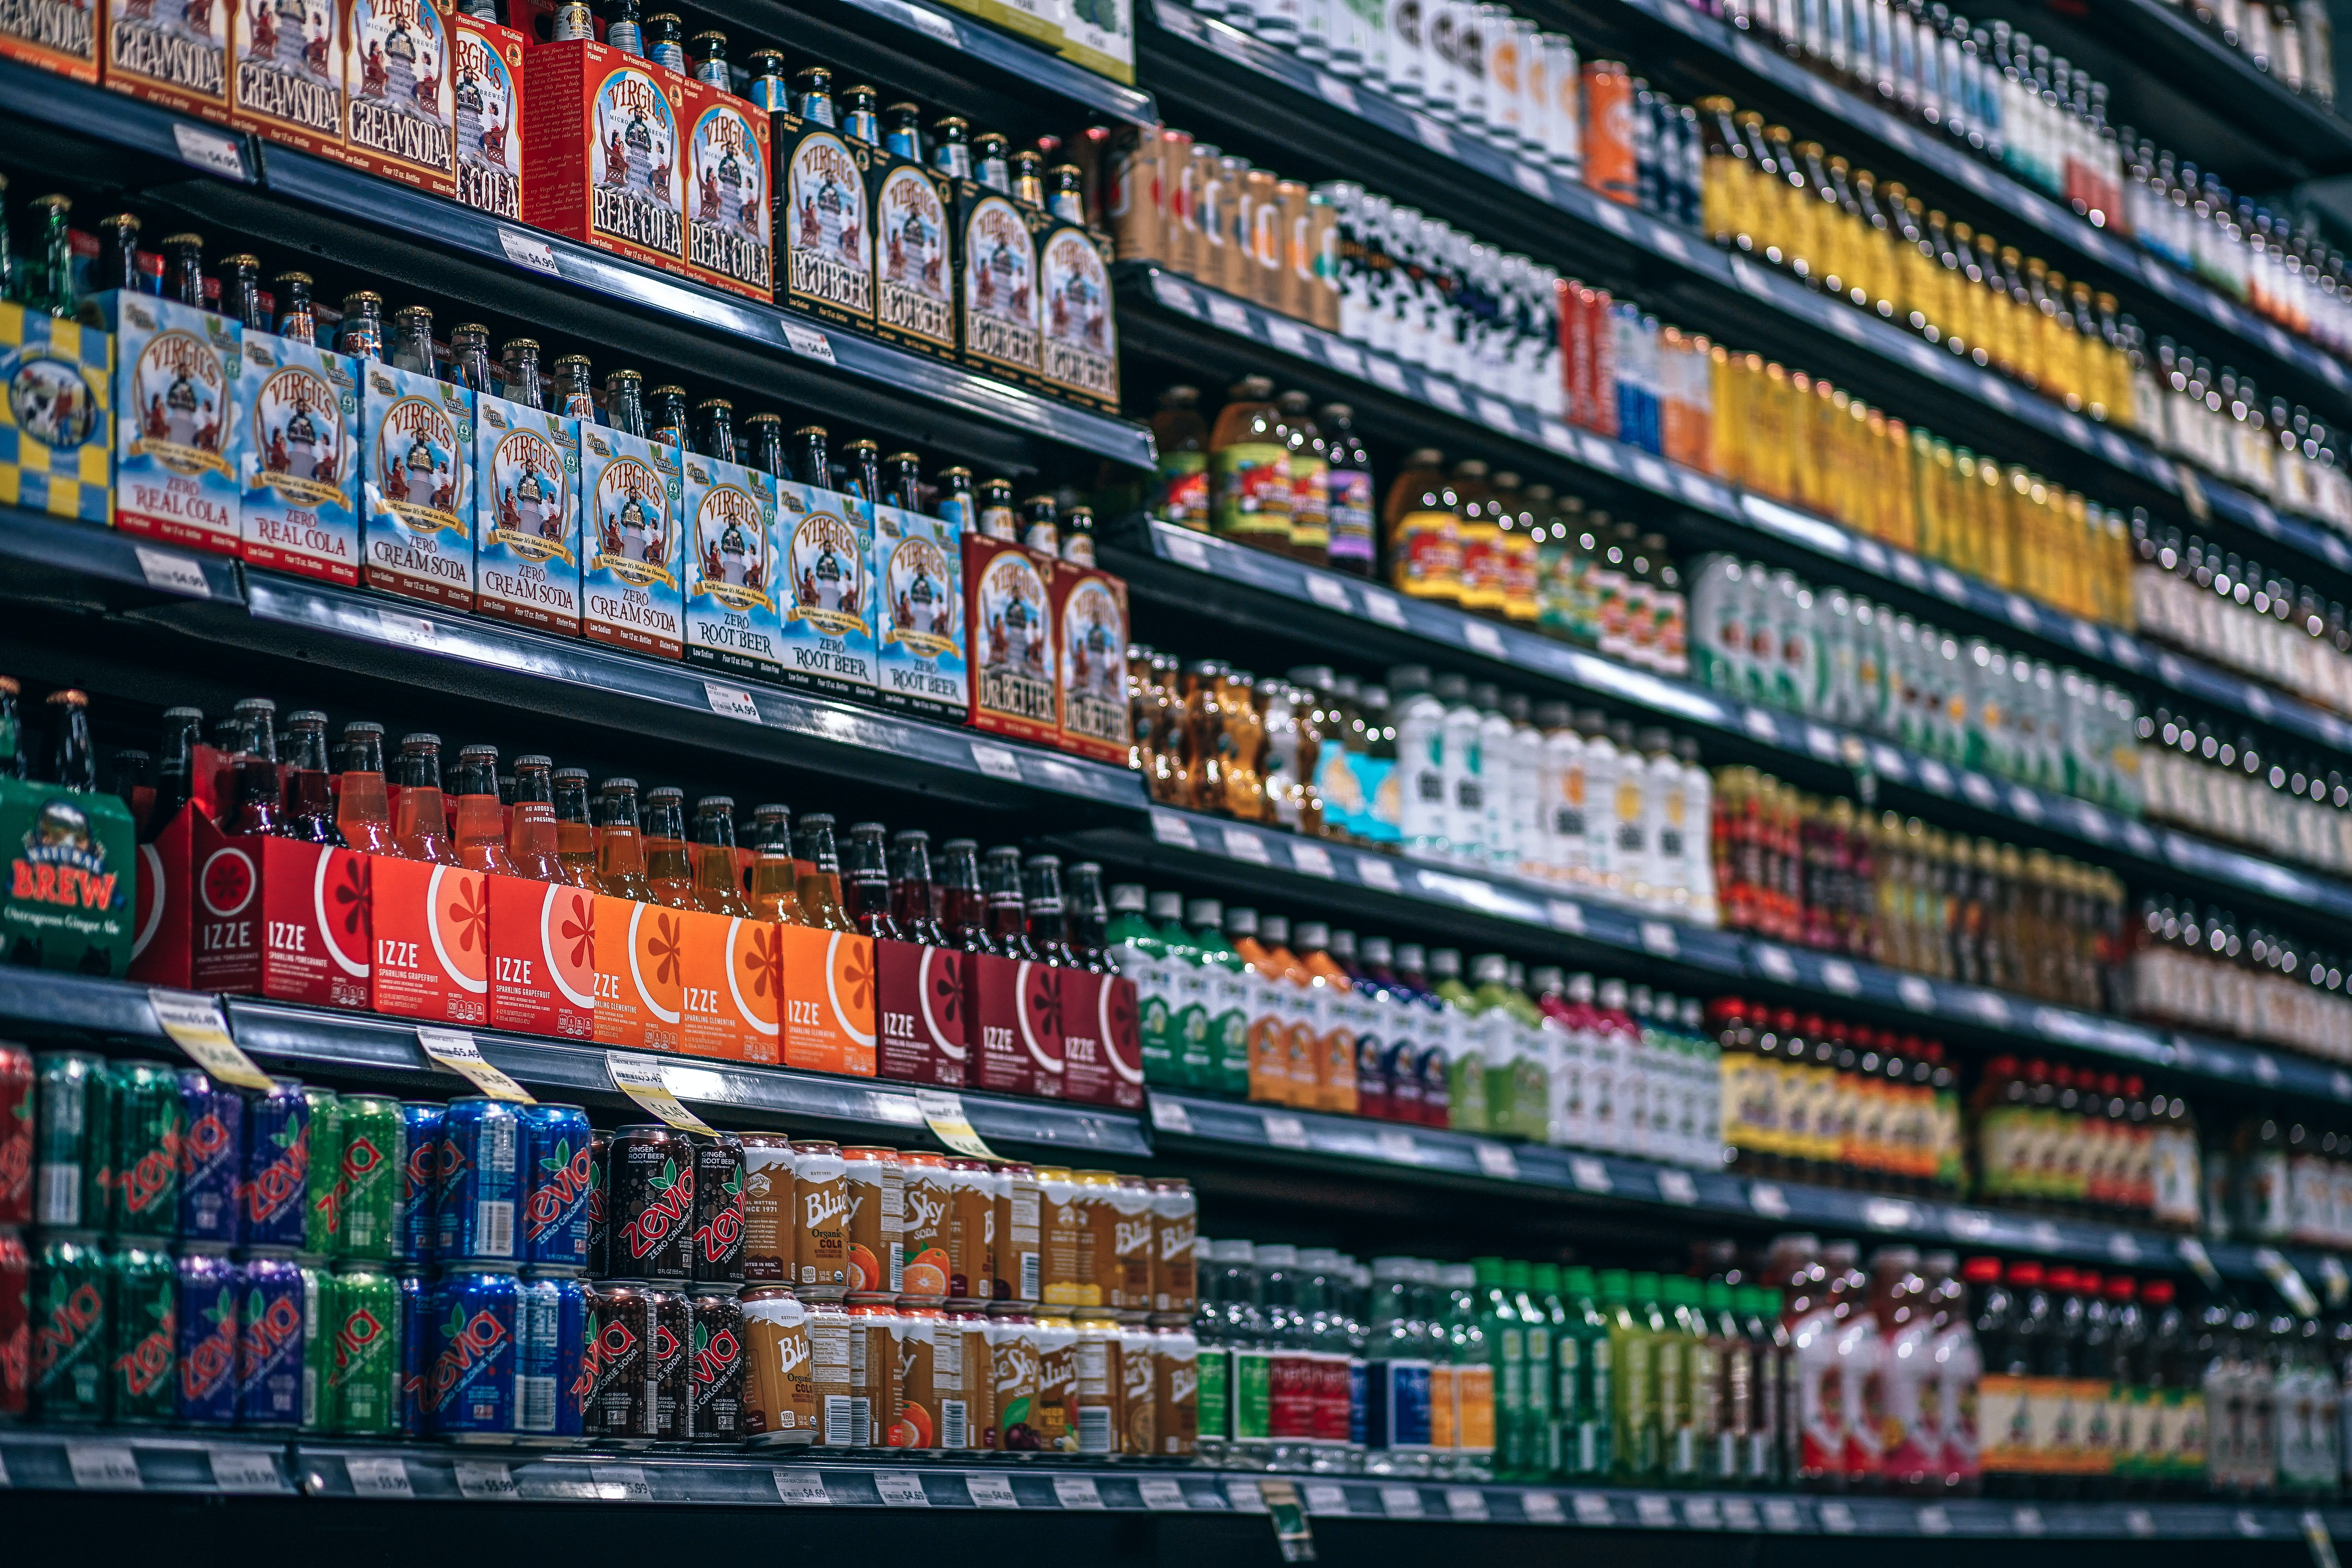 beverage bottles and cans on display shelf